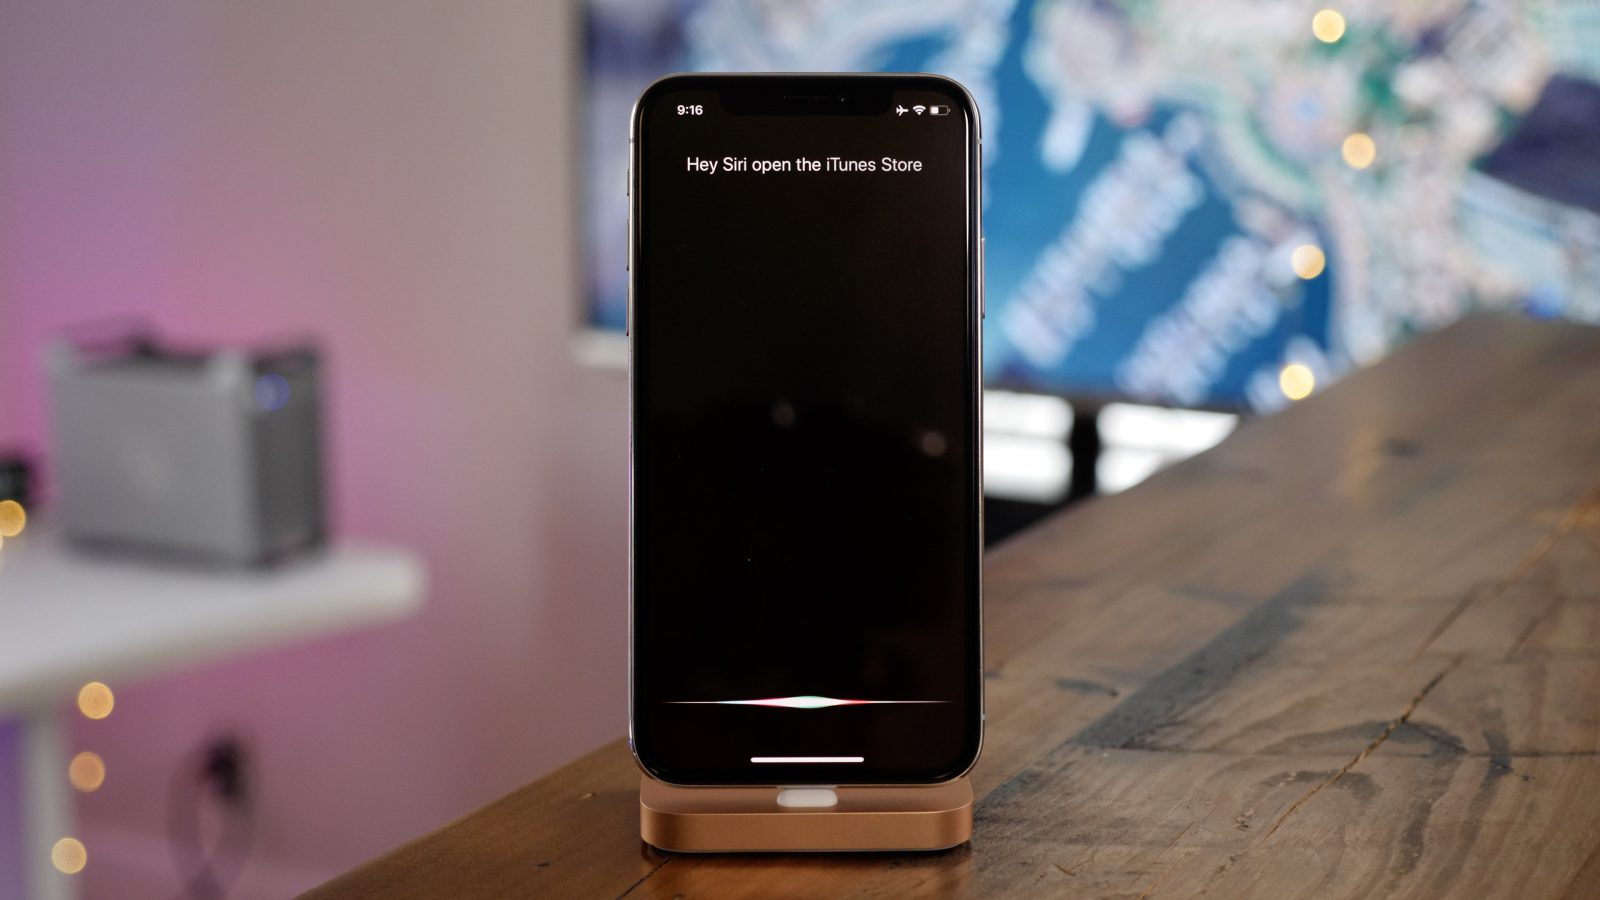 Apple details personalized 'Hey Siri' voice recognition in latest Machine Learning Journal entry bloomberg-apple-hires-data-scientist-team-for-analytics-project